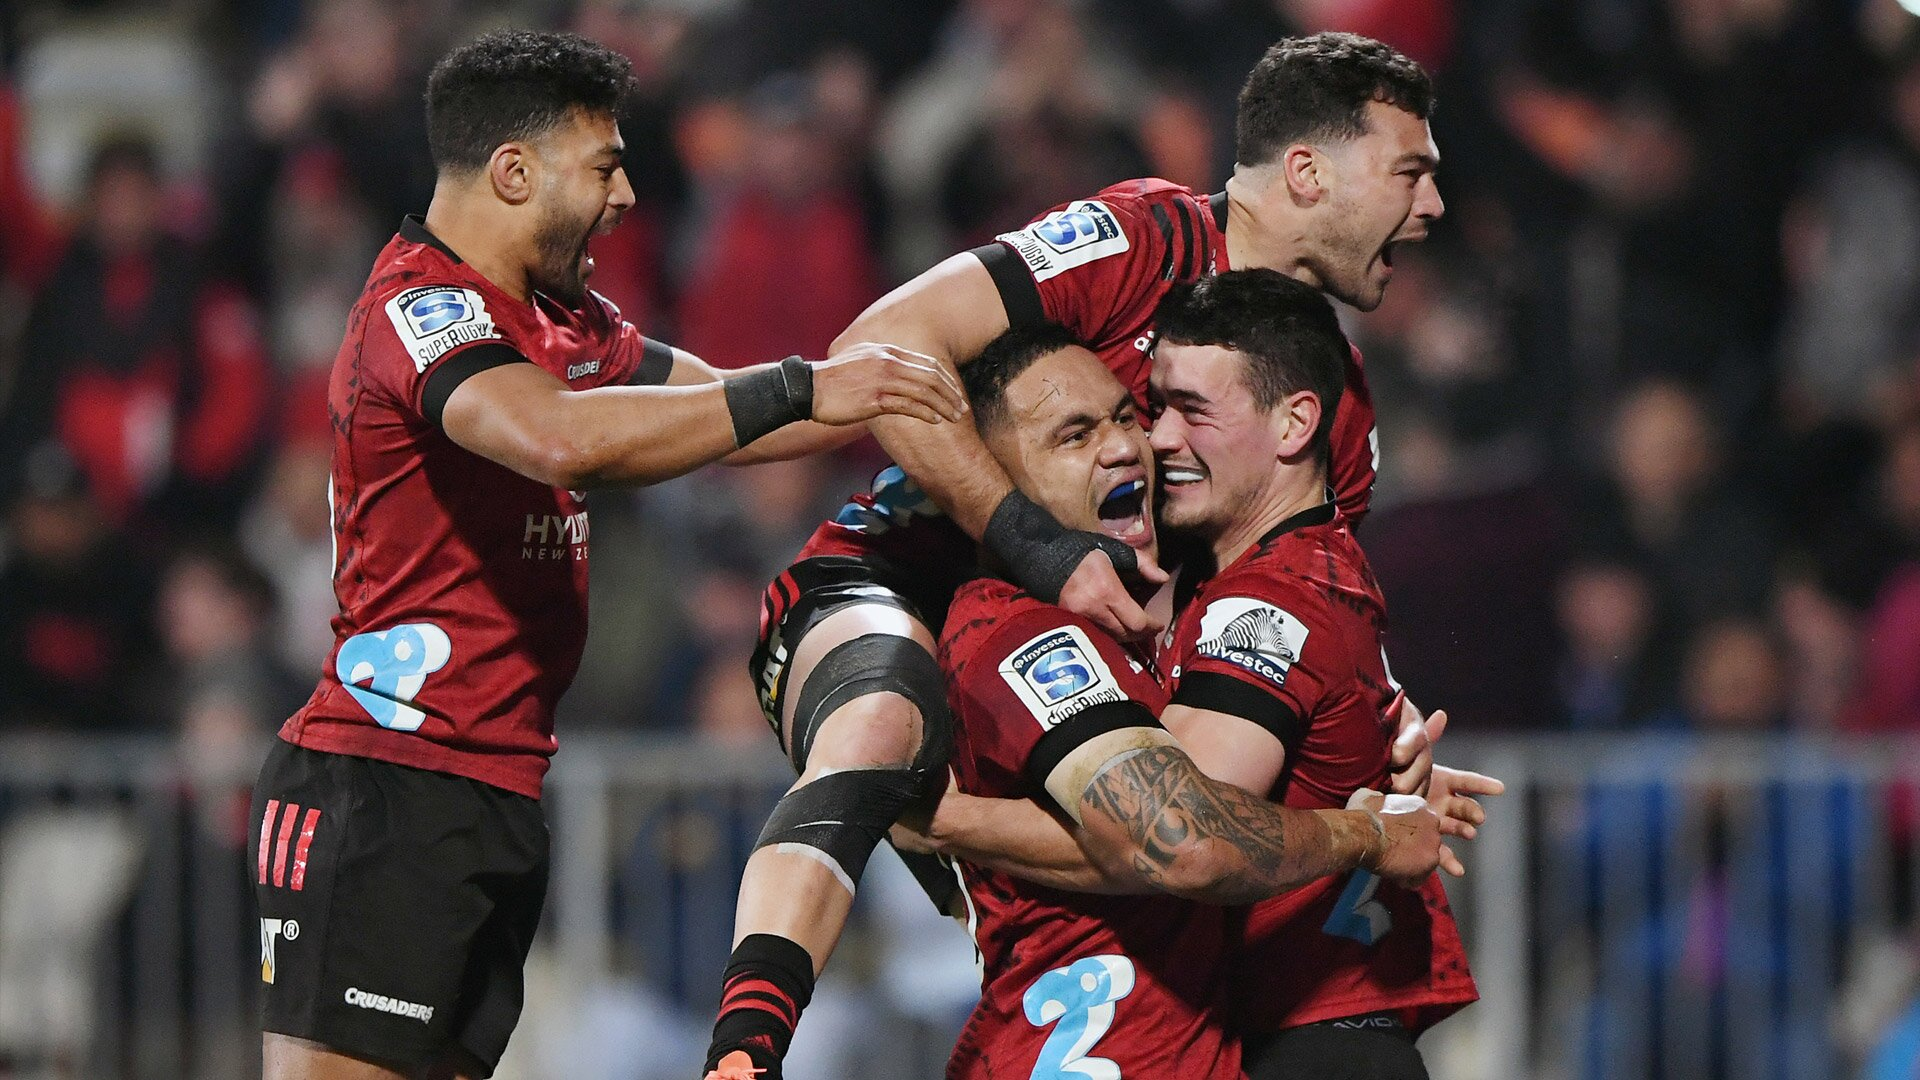 Report: NZ poised for revamped Super Rugby Aotearoa next year with three new teams set to join the competition in 2022